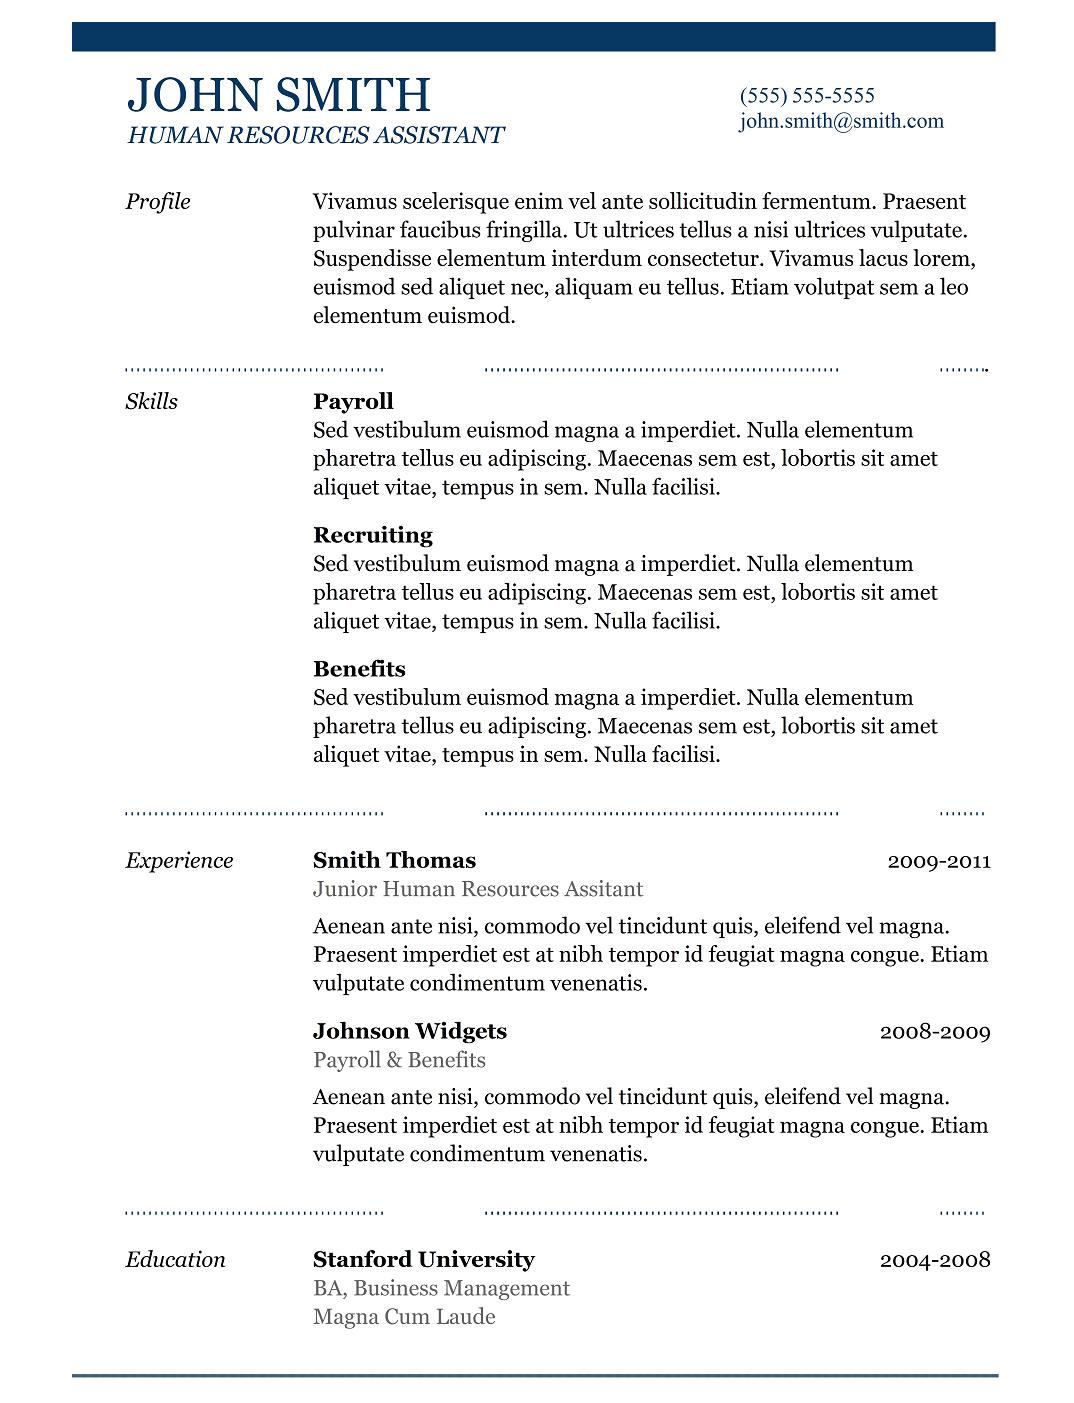 Outline For A Resume For High School Students Internship Resume Samples  Writing Guide Resume Genius Internship  High School Student Resume For College